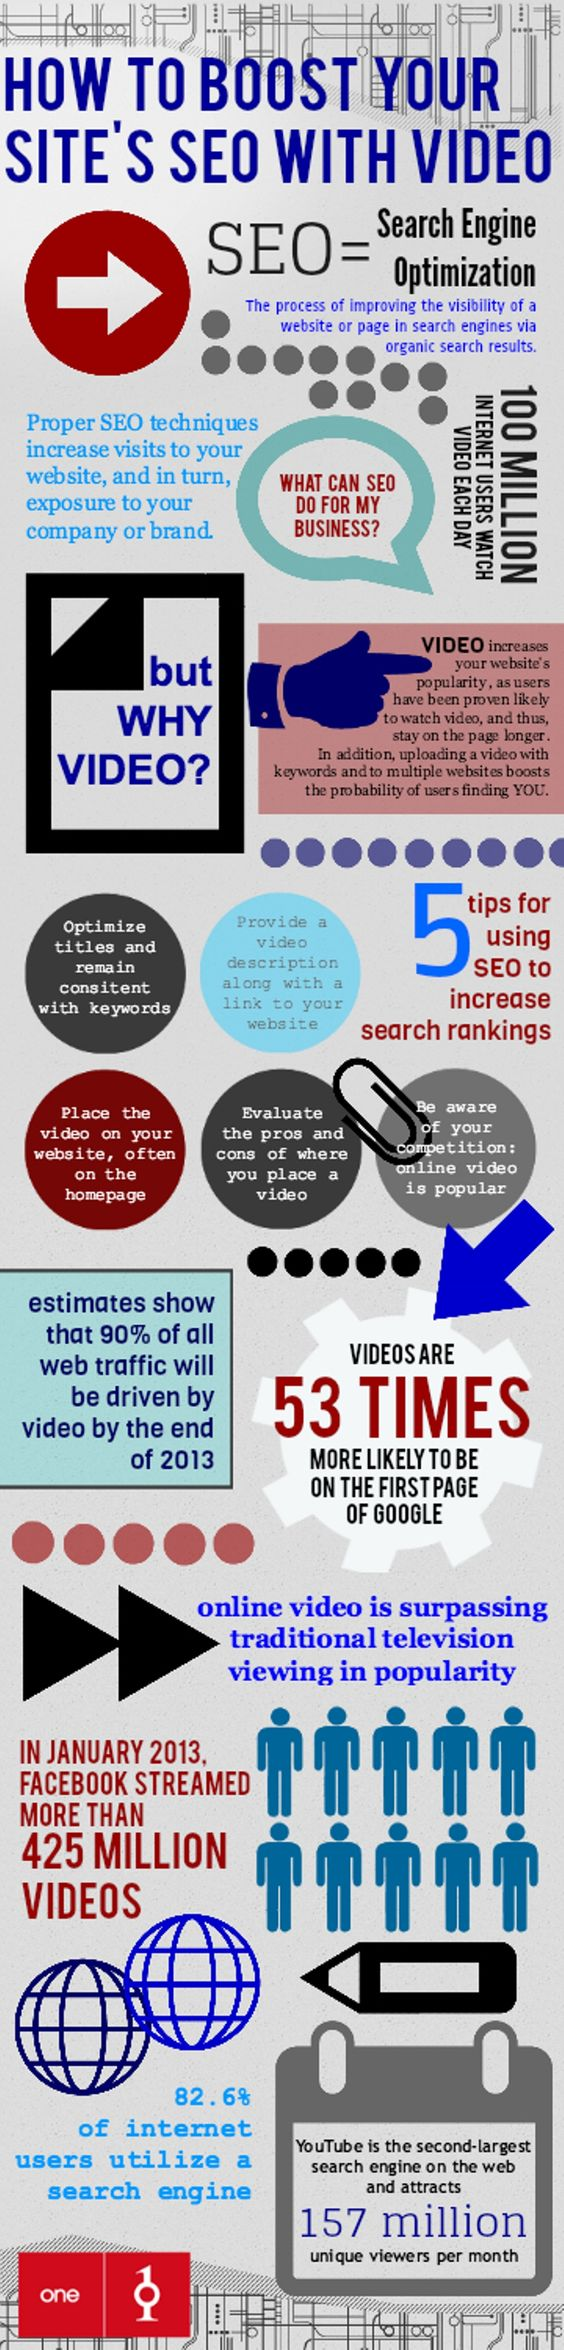 Boost Your Site SEO With Videos in Connecticut